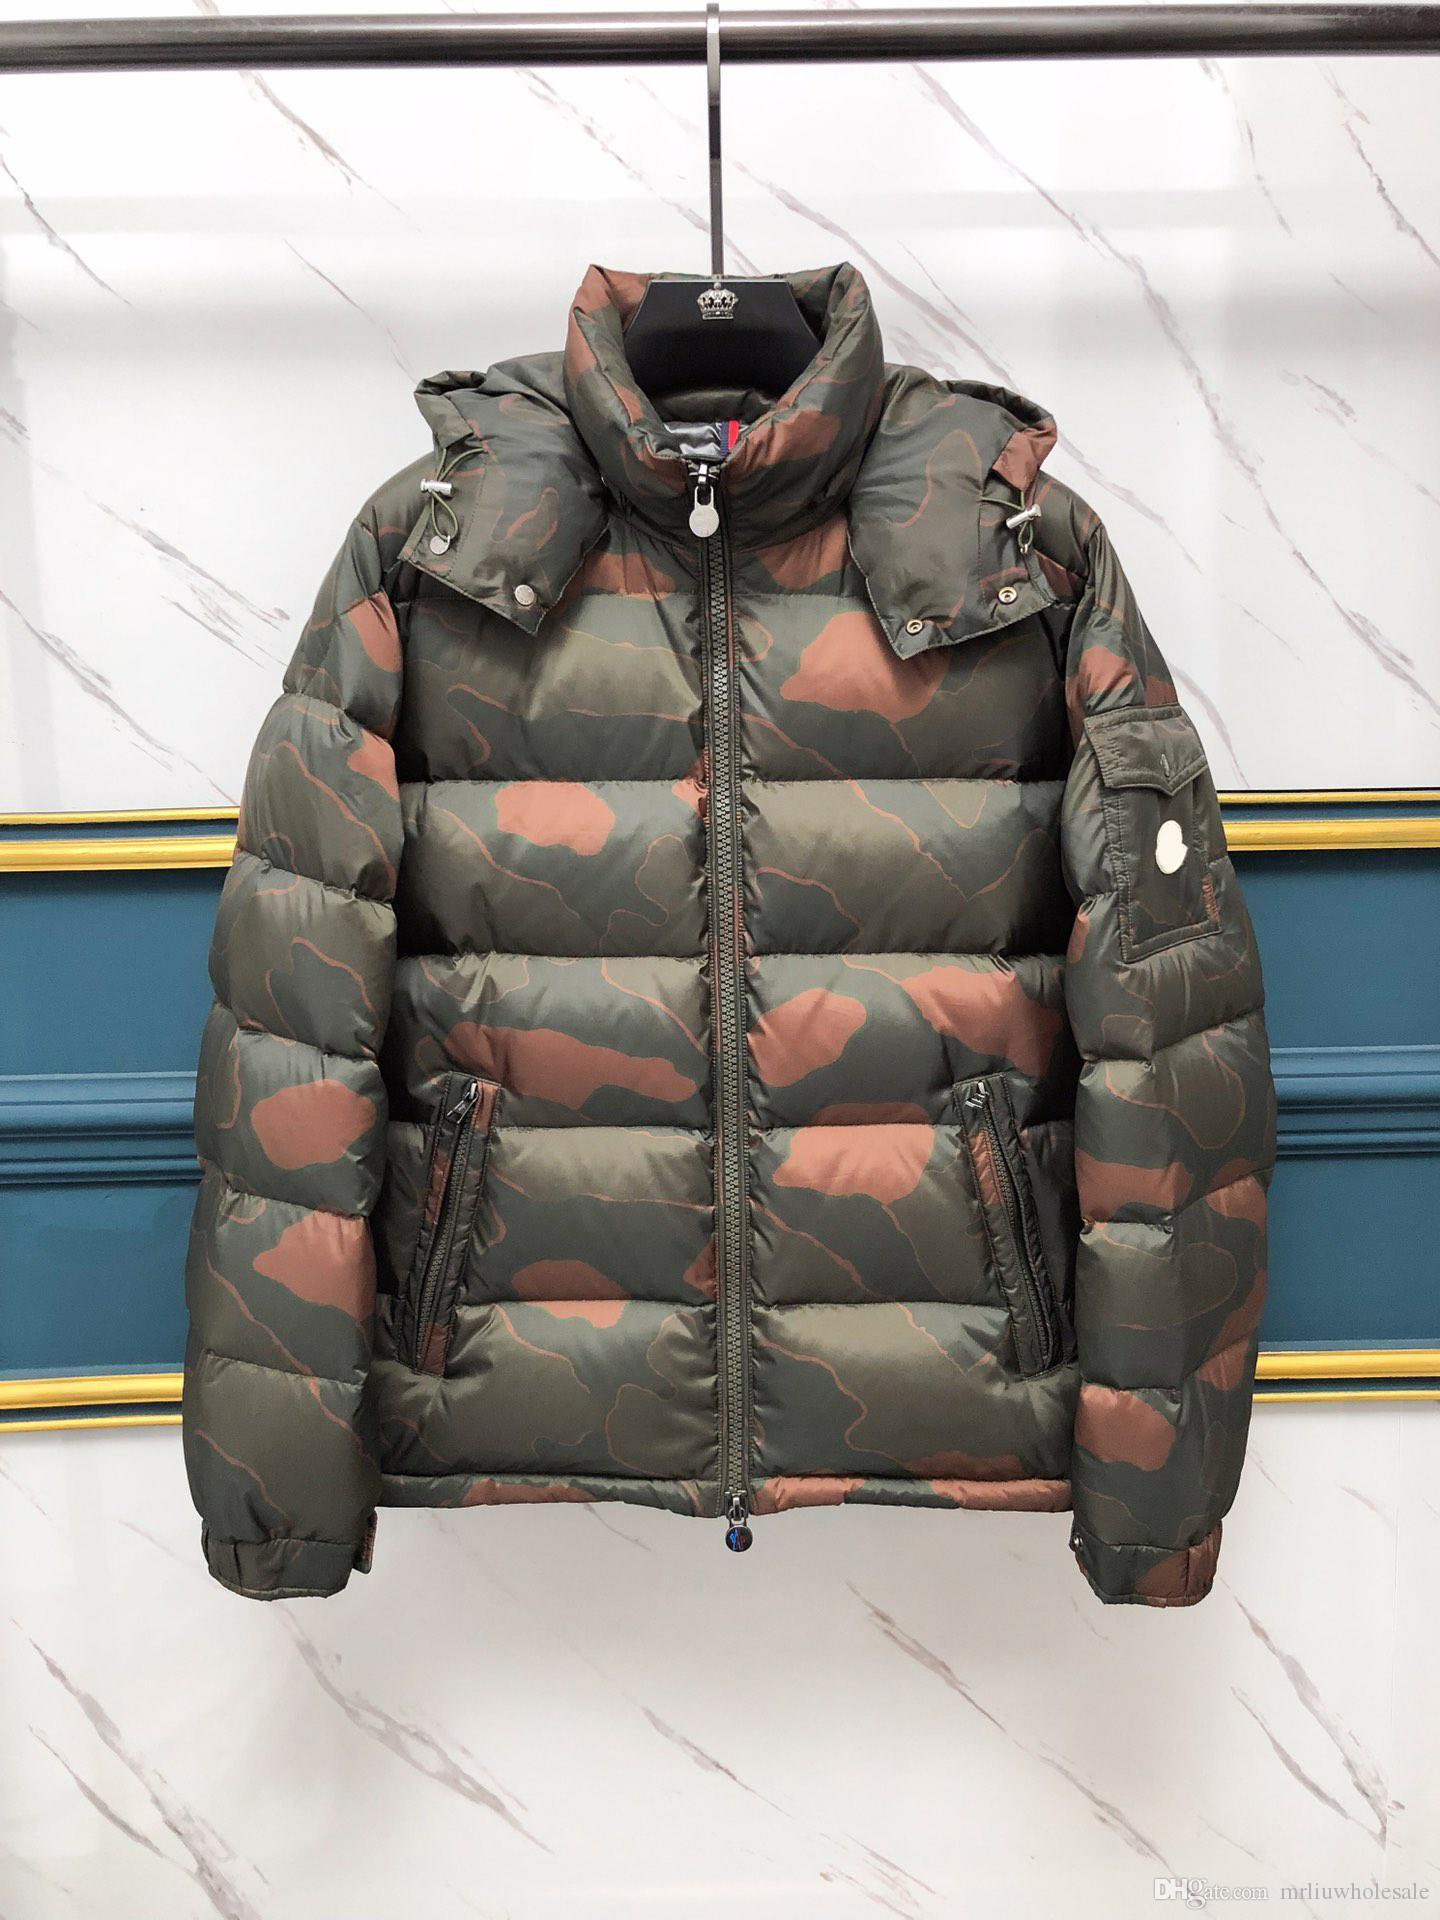 872b06523a7 2019 Winter Jacket Men Quality Quality MA European Size 90%Goose Solid Coat  Camouflage Down Jacket Men Women Cold Warm From Hhggr69, $319.42 |  DHgate.Com